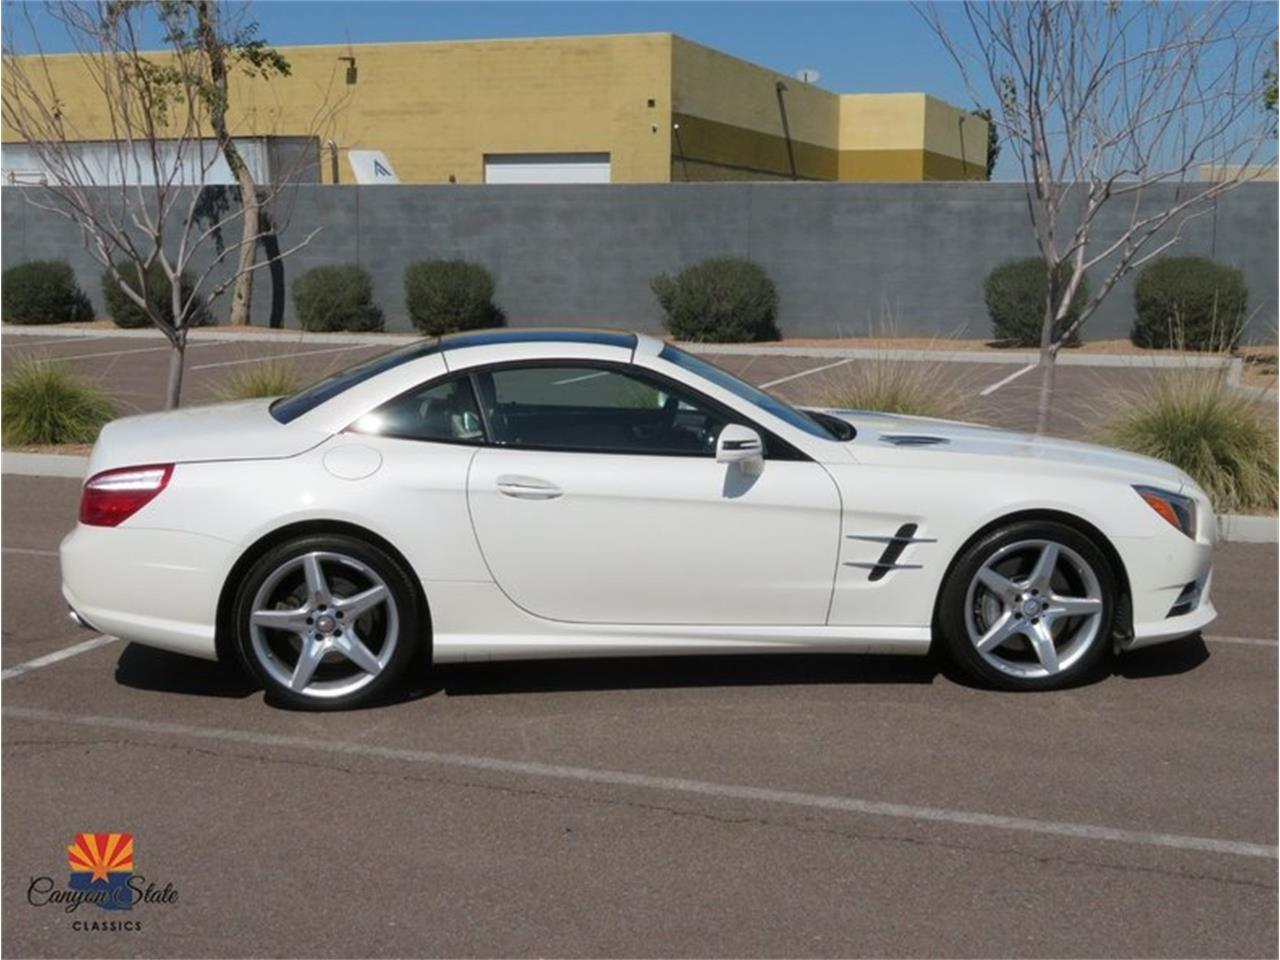 2013 Mercedes-Benz SL-Class for sale in Tempe, AZ – photo 69